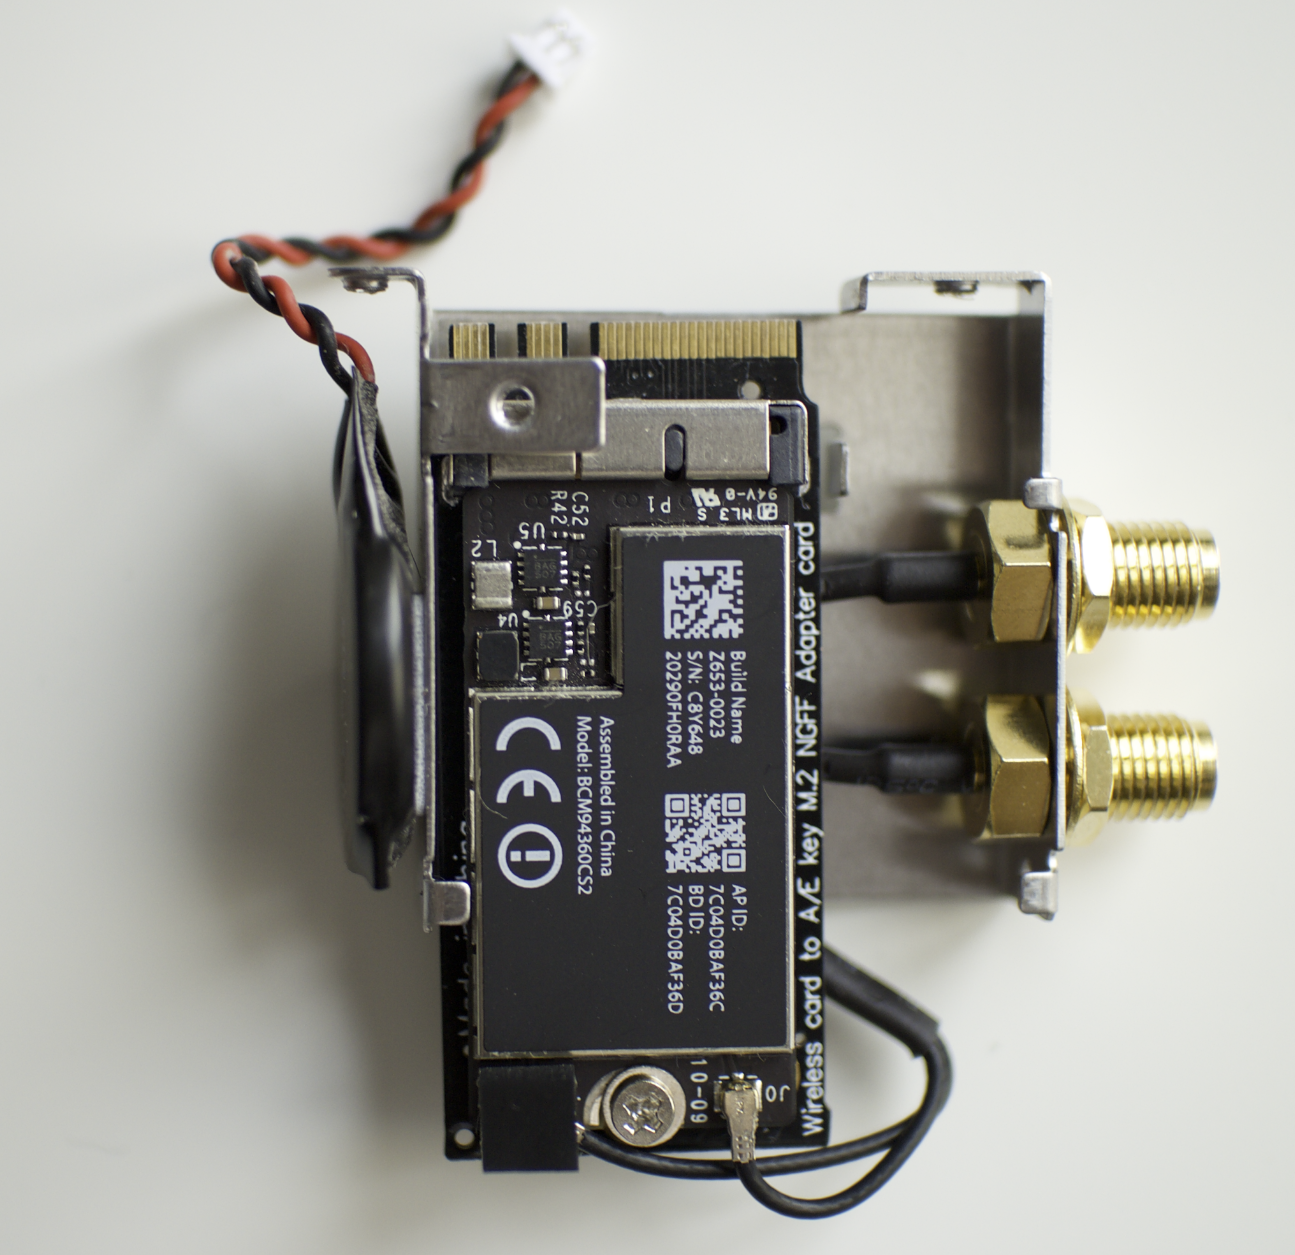 Solved) BCM94360CS2 M 2 NFGG – WiFi and Airdrop works but BT not